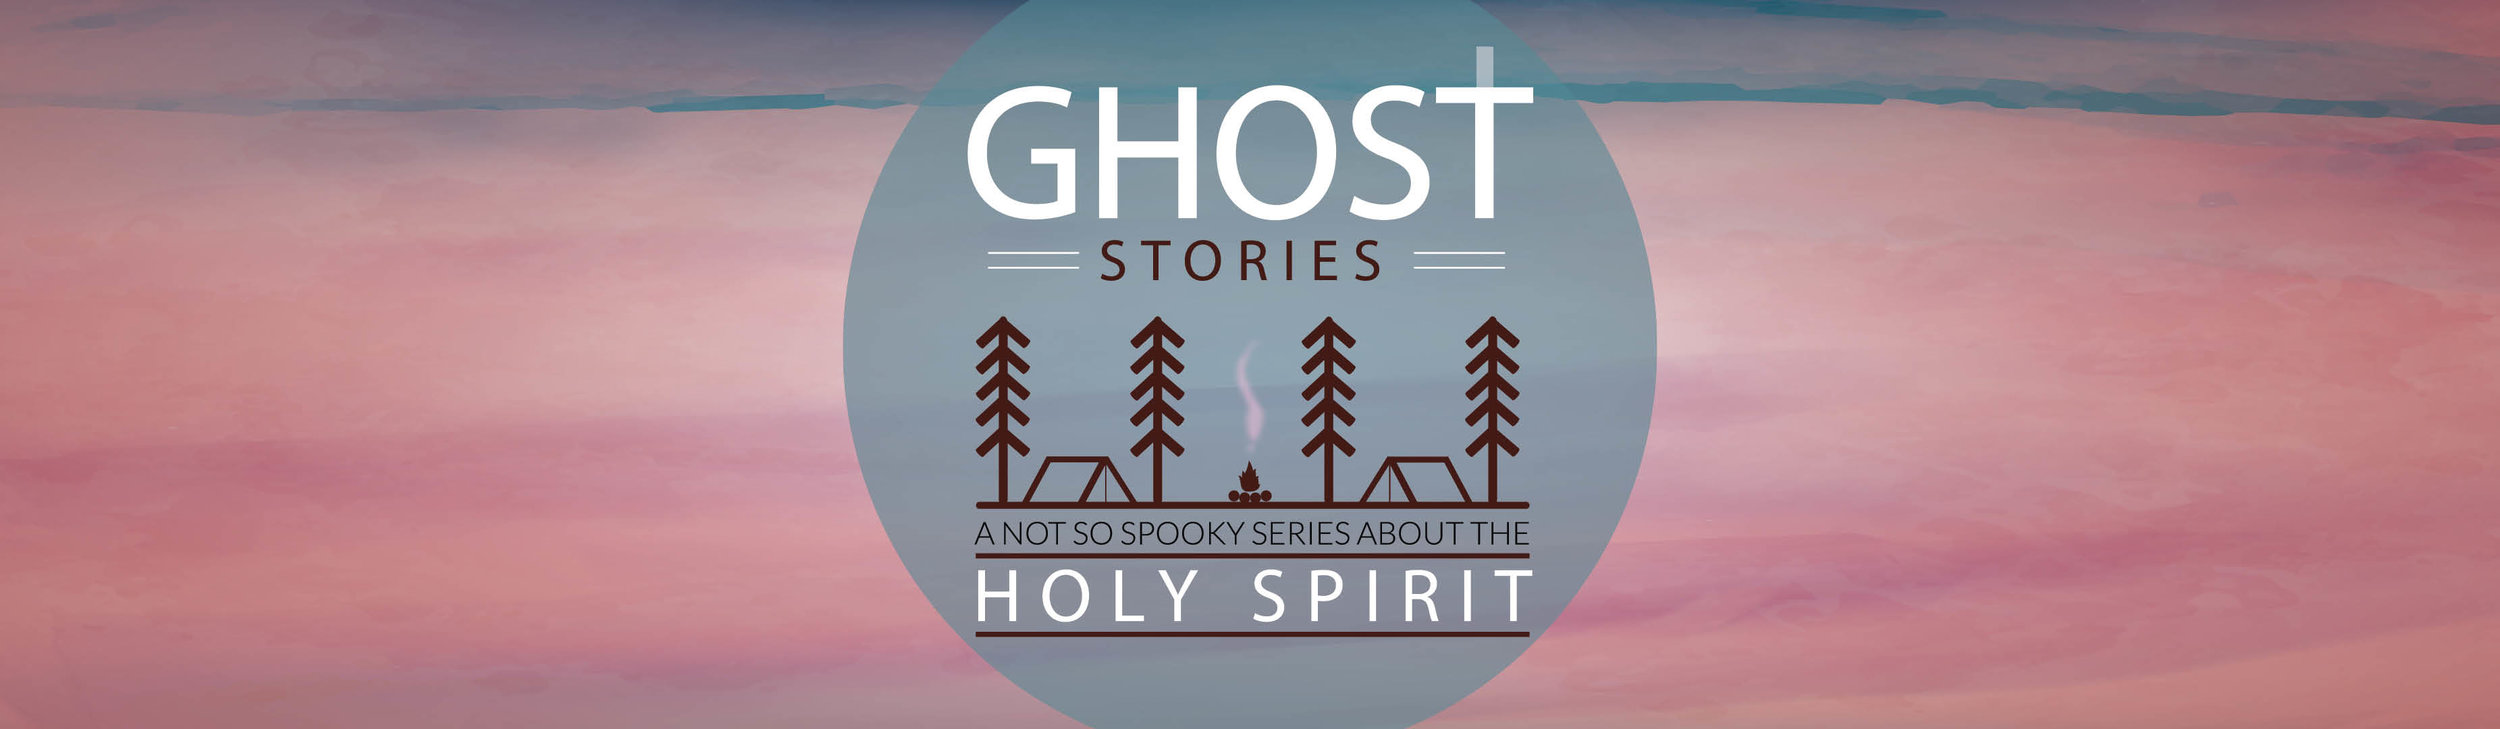 Ghost Stories Header Graphic.jpg